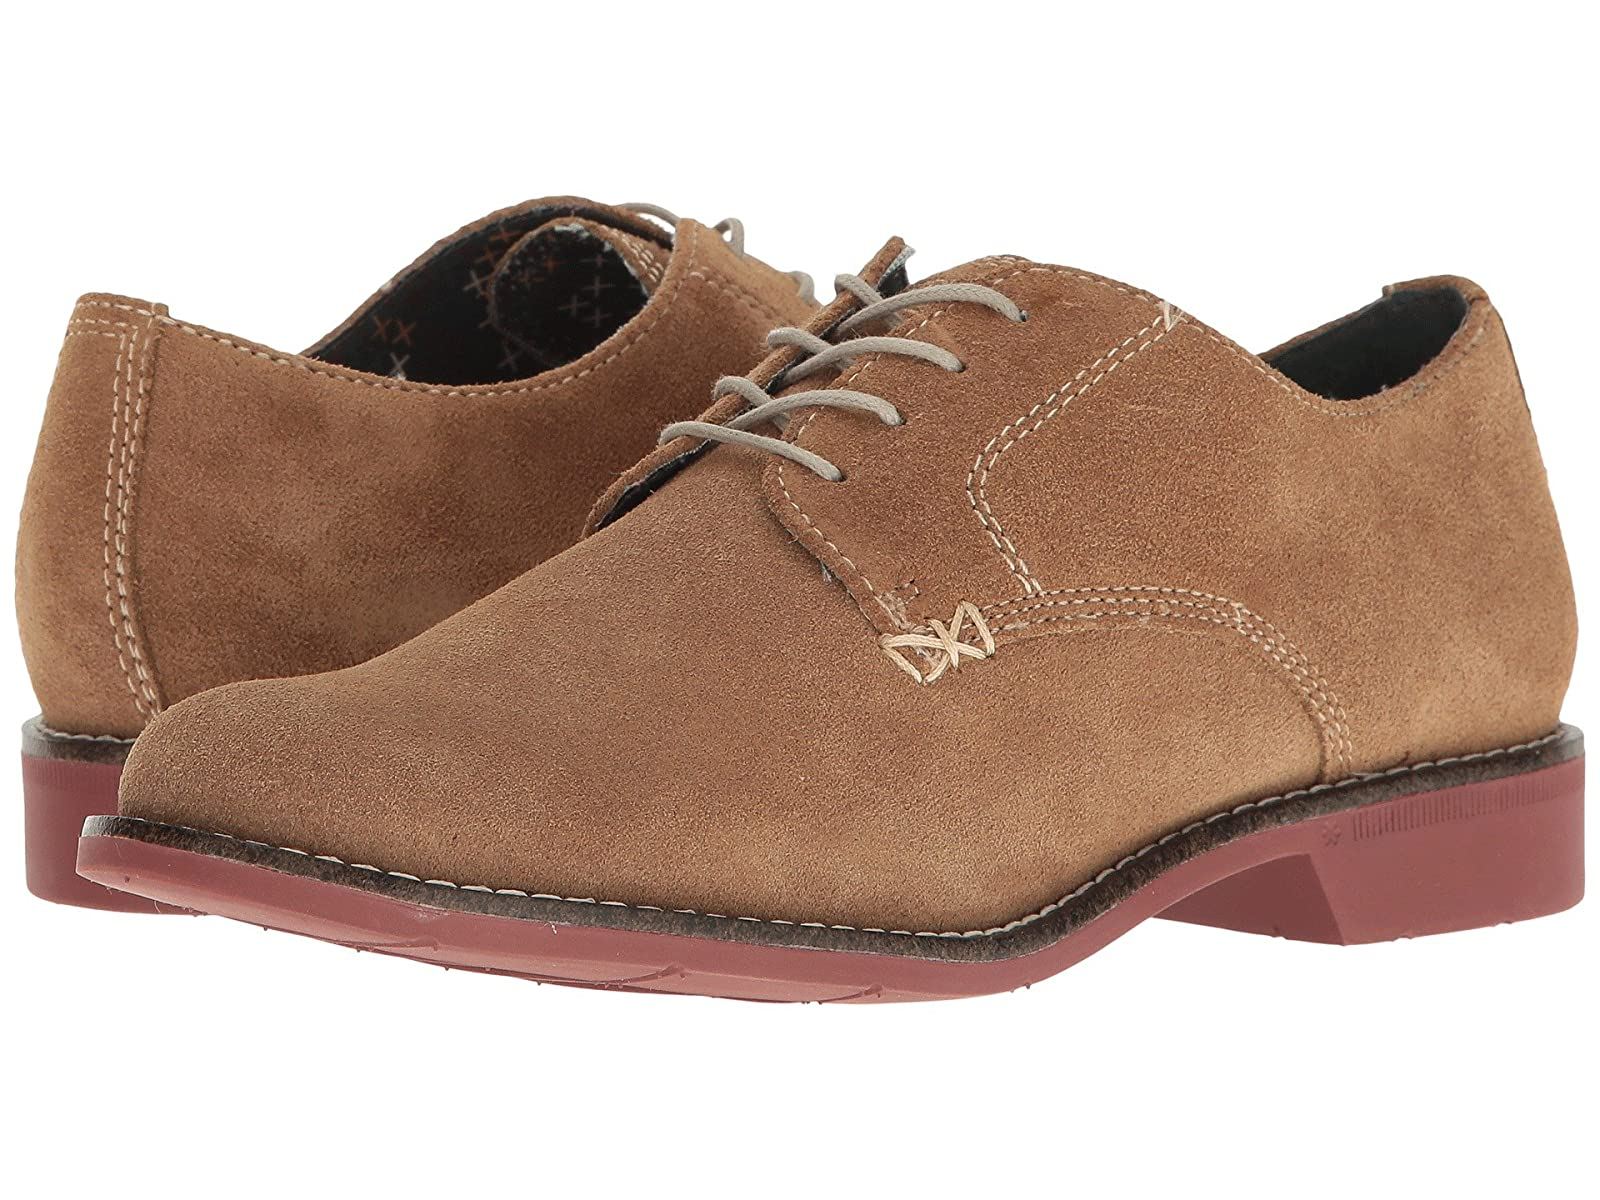 G.H. Bass & Co. DeniceAtmospheric grades have affordable shoes